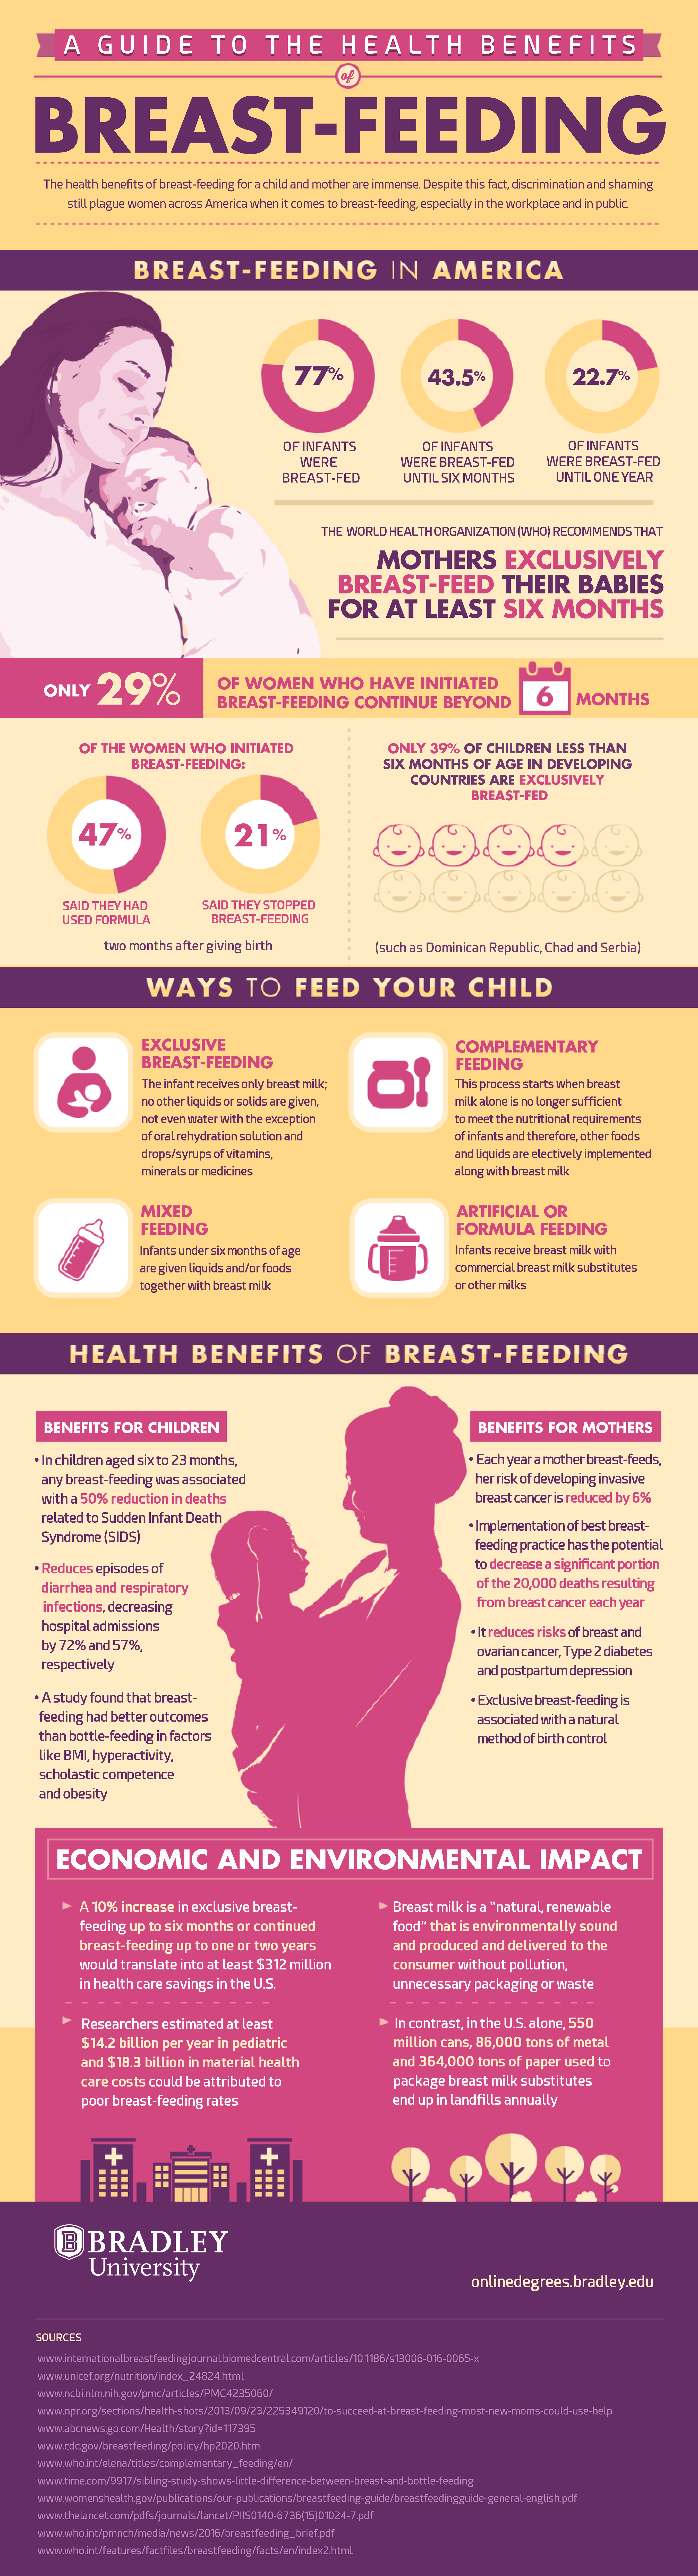 Guide to the Health Benefits of Breastfeeding